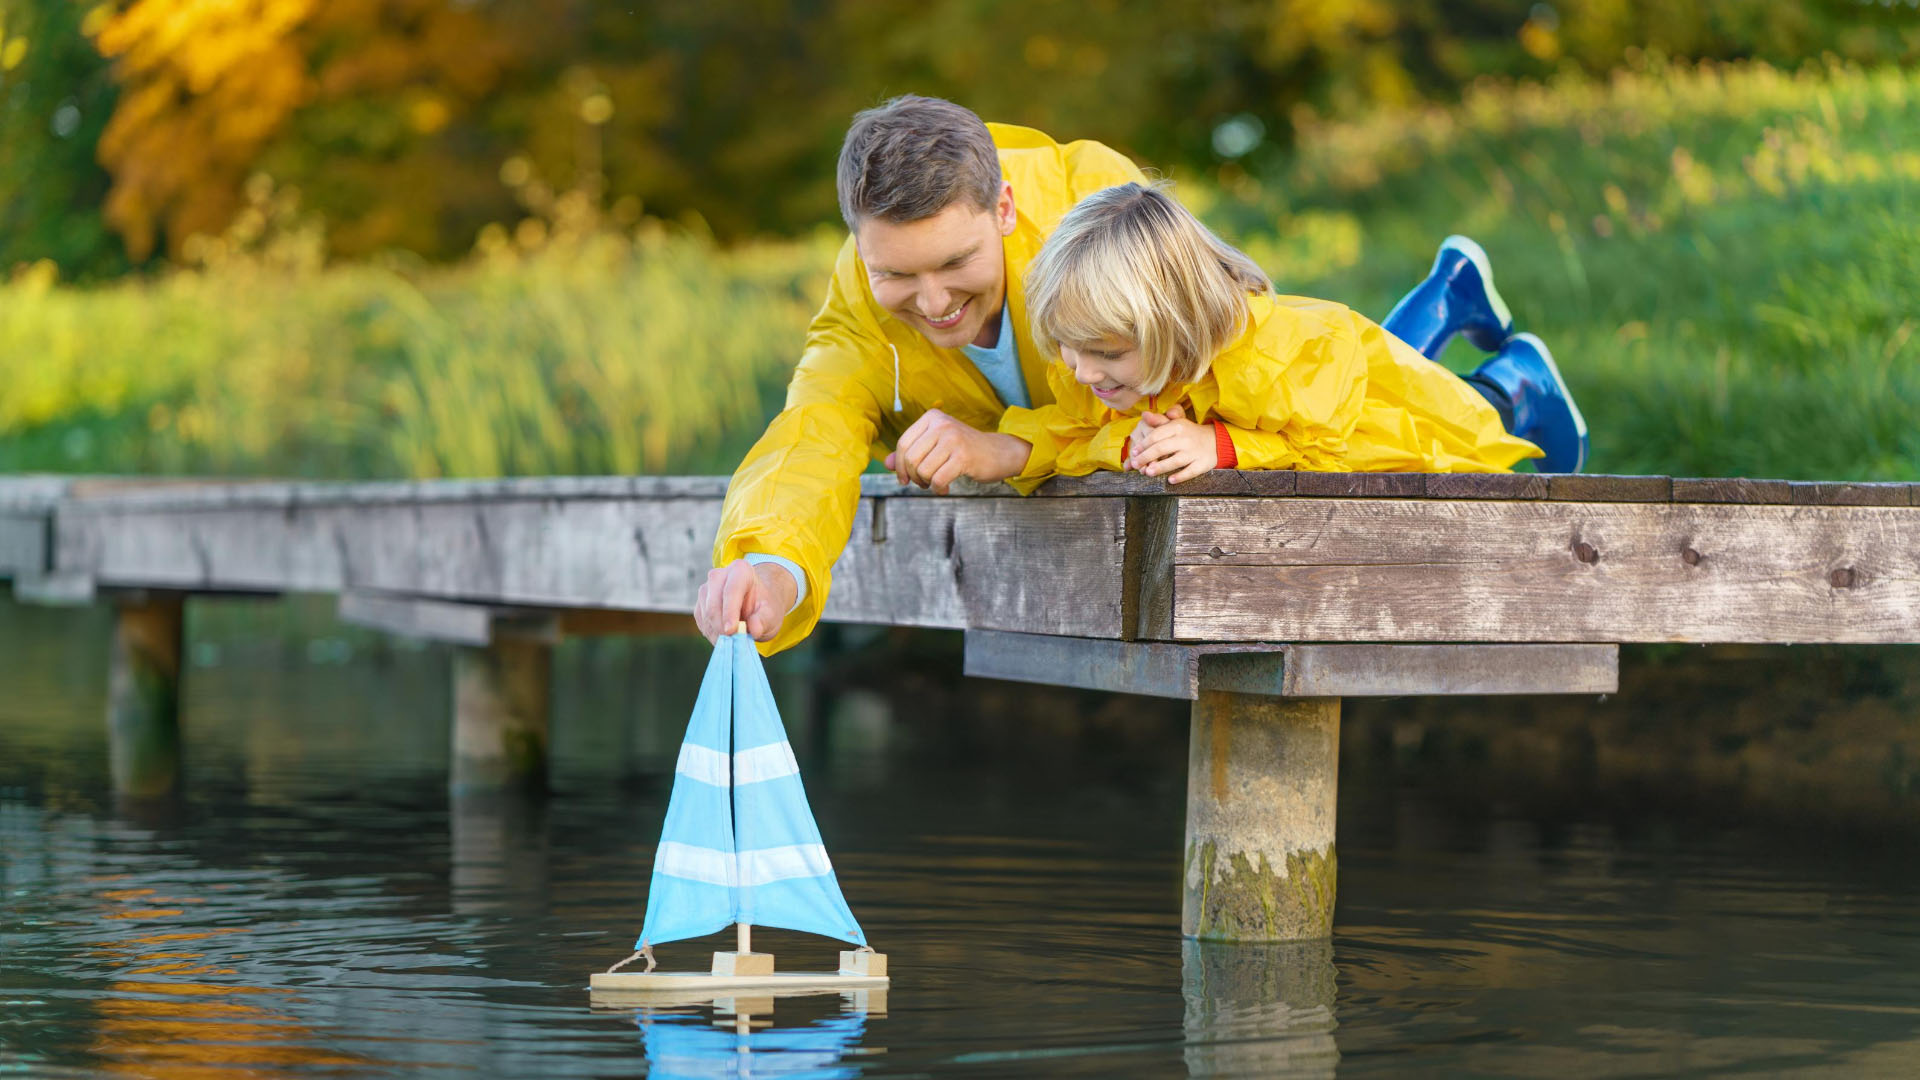 Outdoor Learning Activities For Kids | Fun Ways To Learn At Home